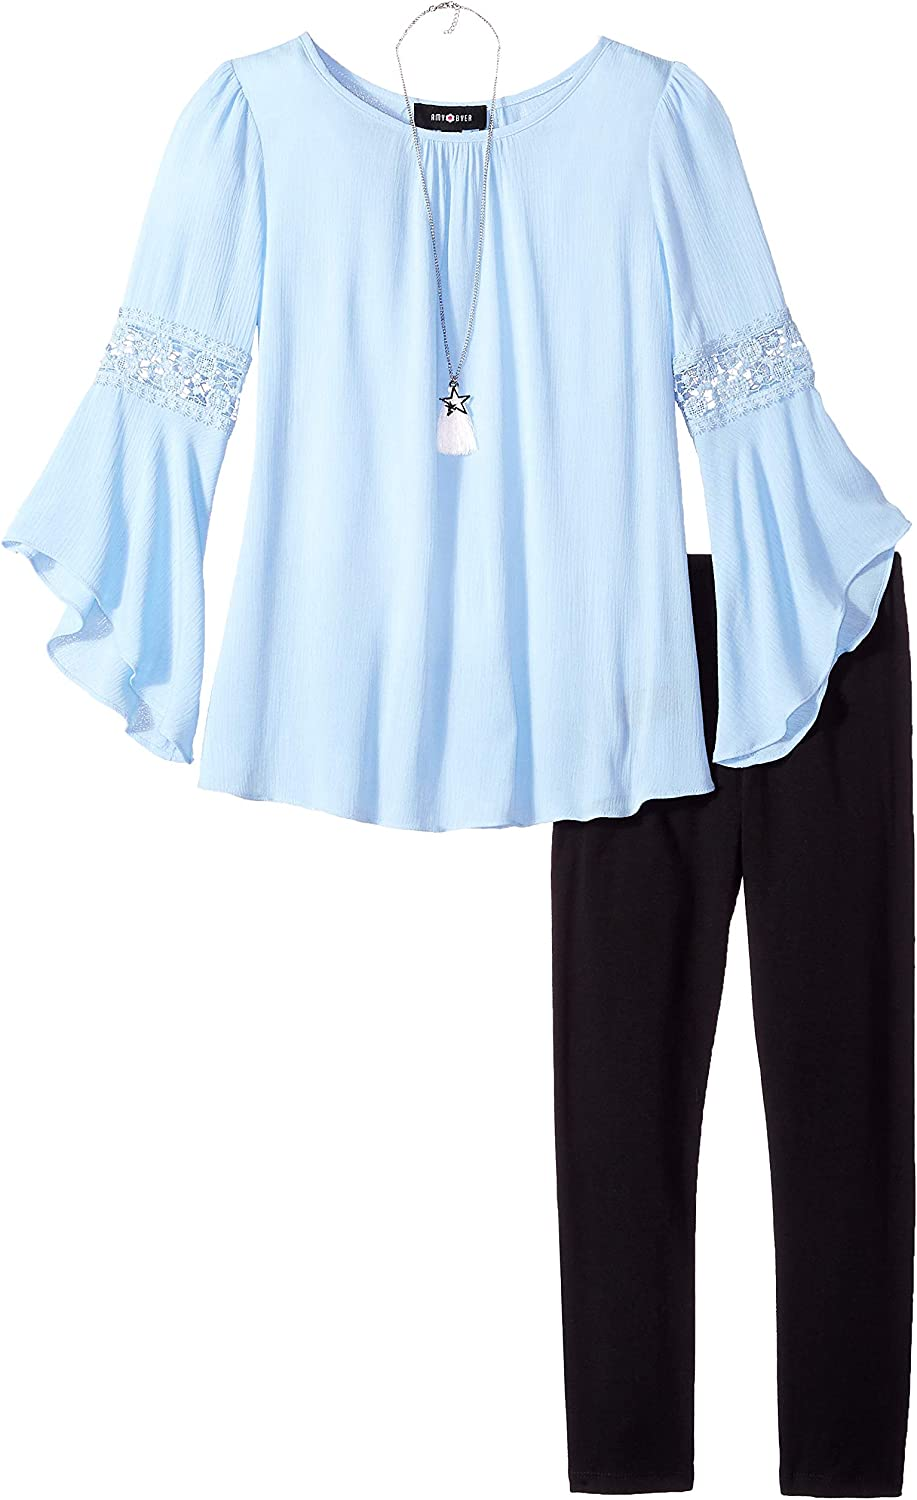 Amy Byer Girls Bell Sleeve Top and Leggings 2-Piece Set with Necklace